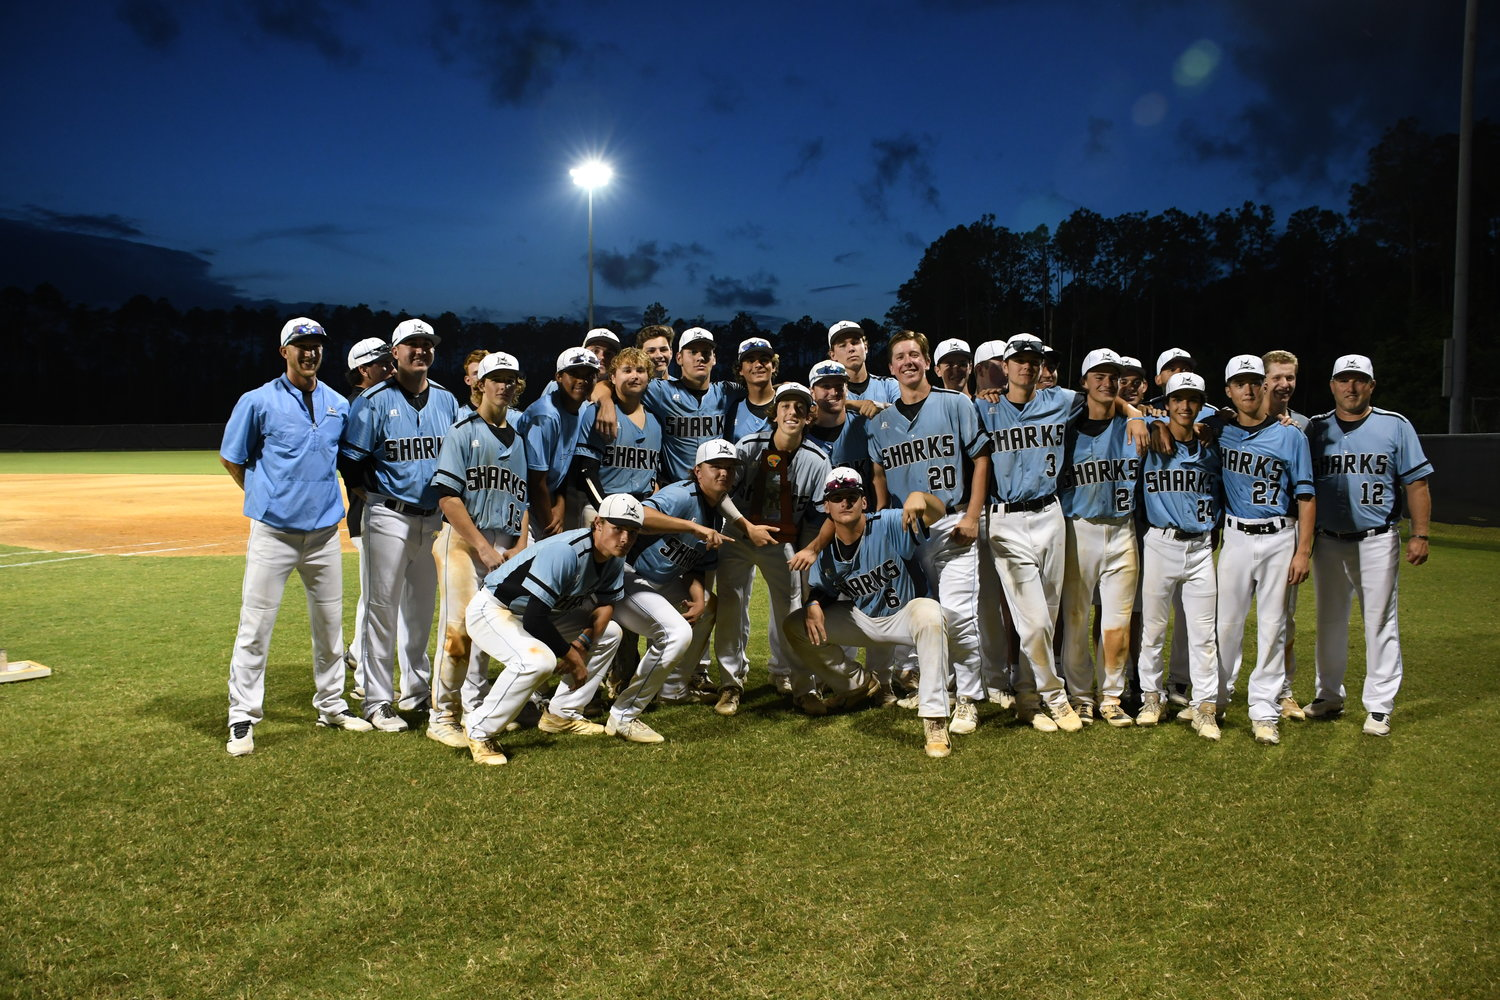 The Ponte Vedra baseball team gathers after winning the District 6A title on Thursday, May 9.